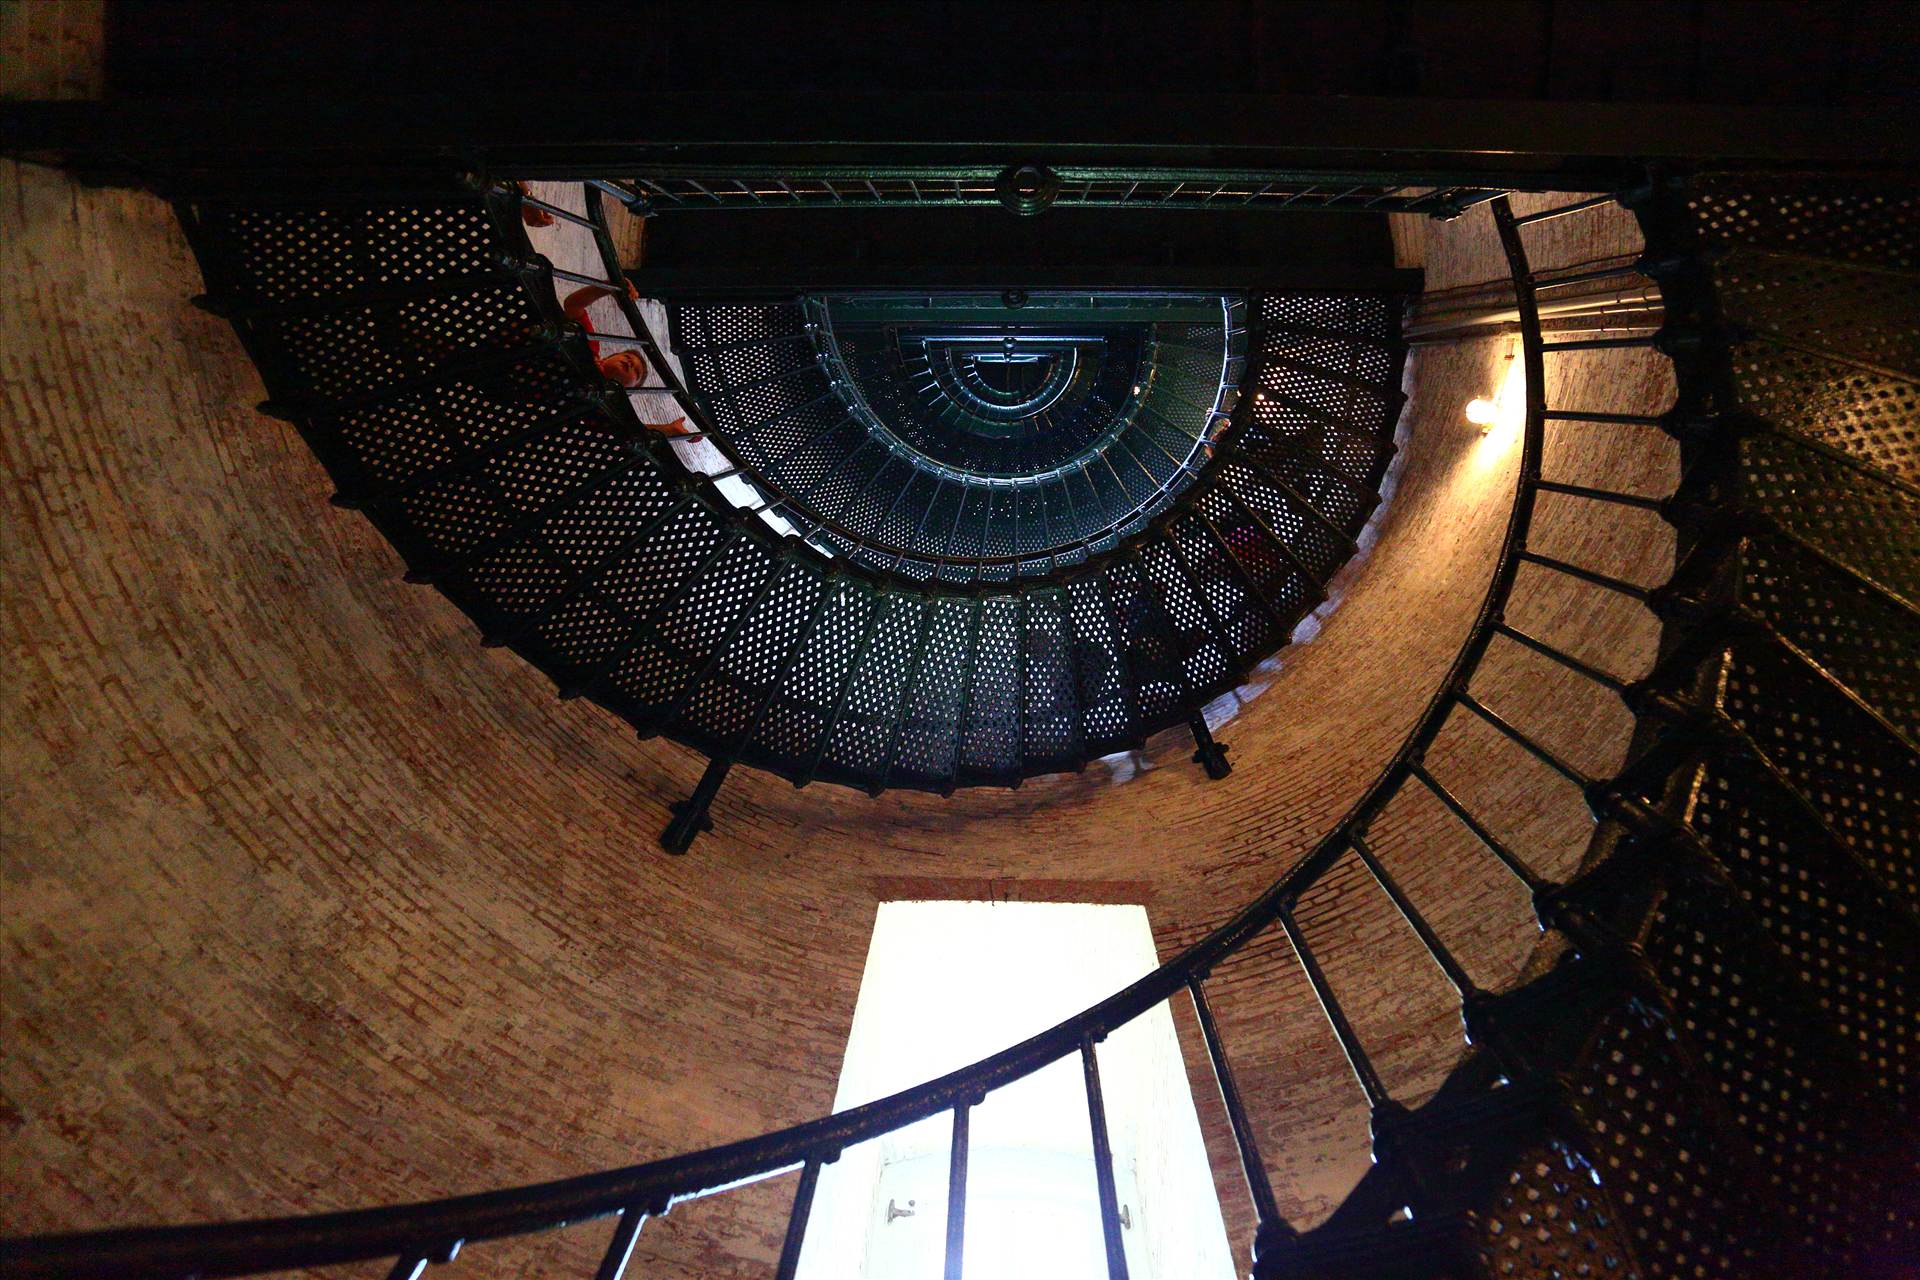 Currituck Lighthouse Steps - Steps leading up to the top of the lighthouse in Currituck, North Carolina. by D Scott Smith